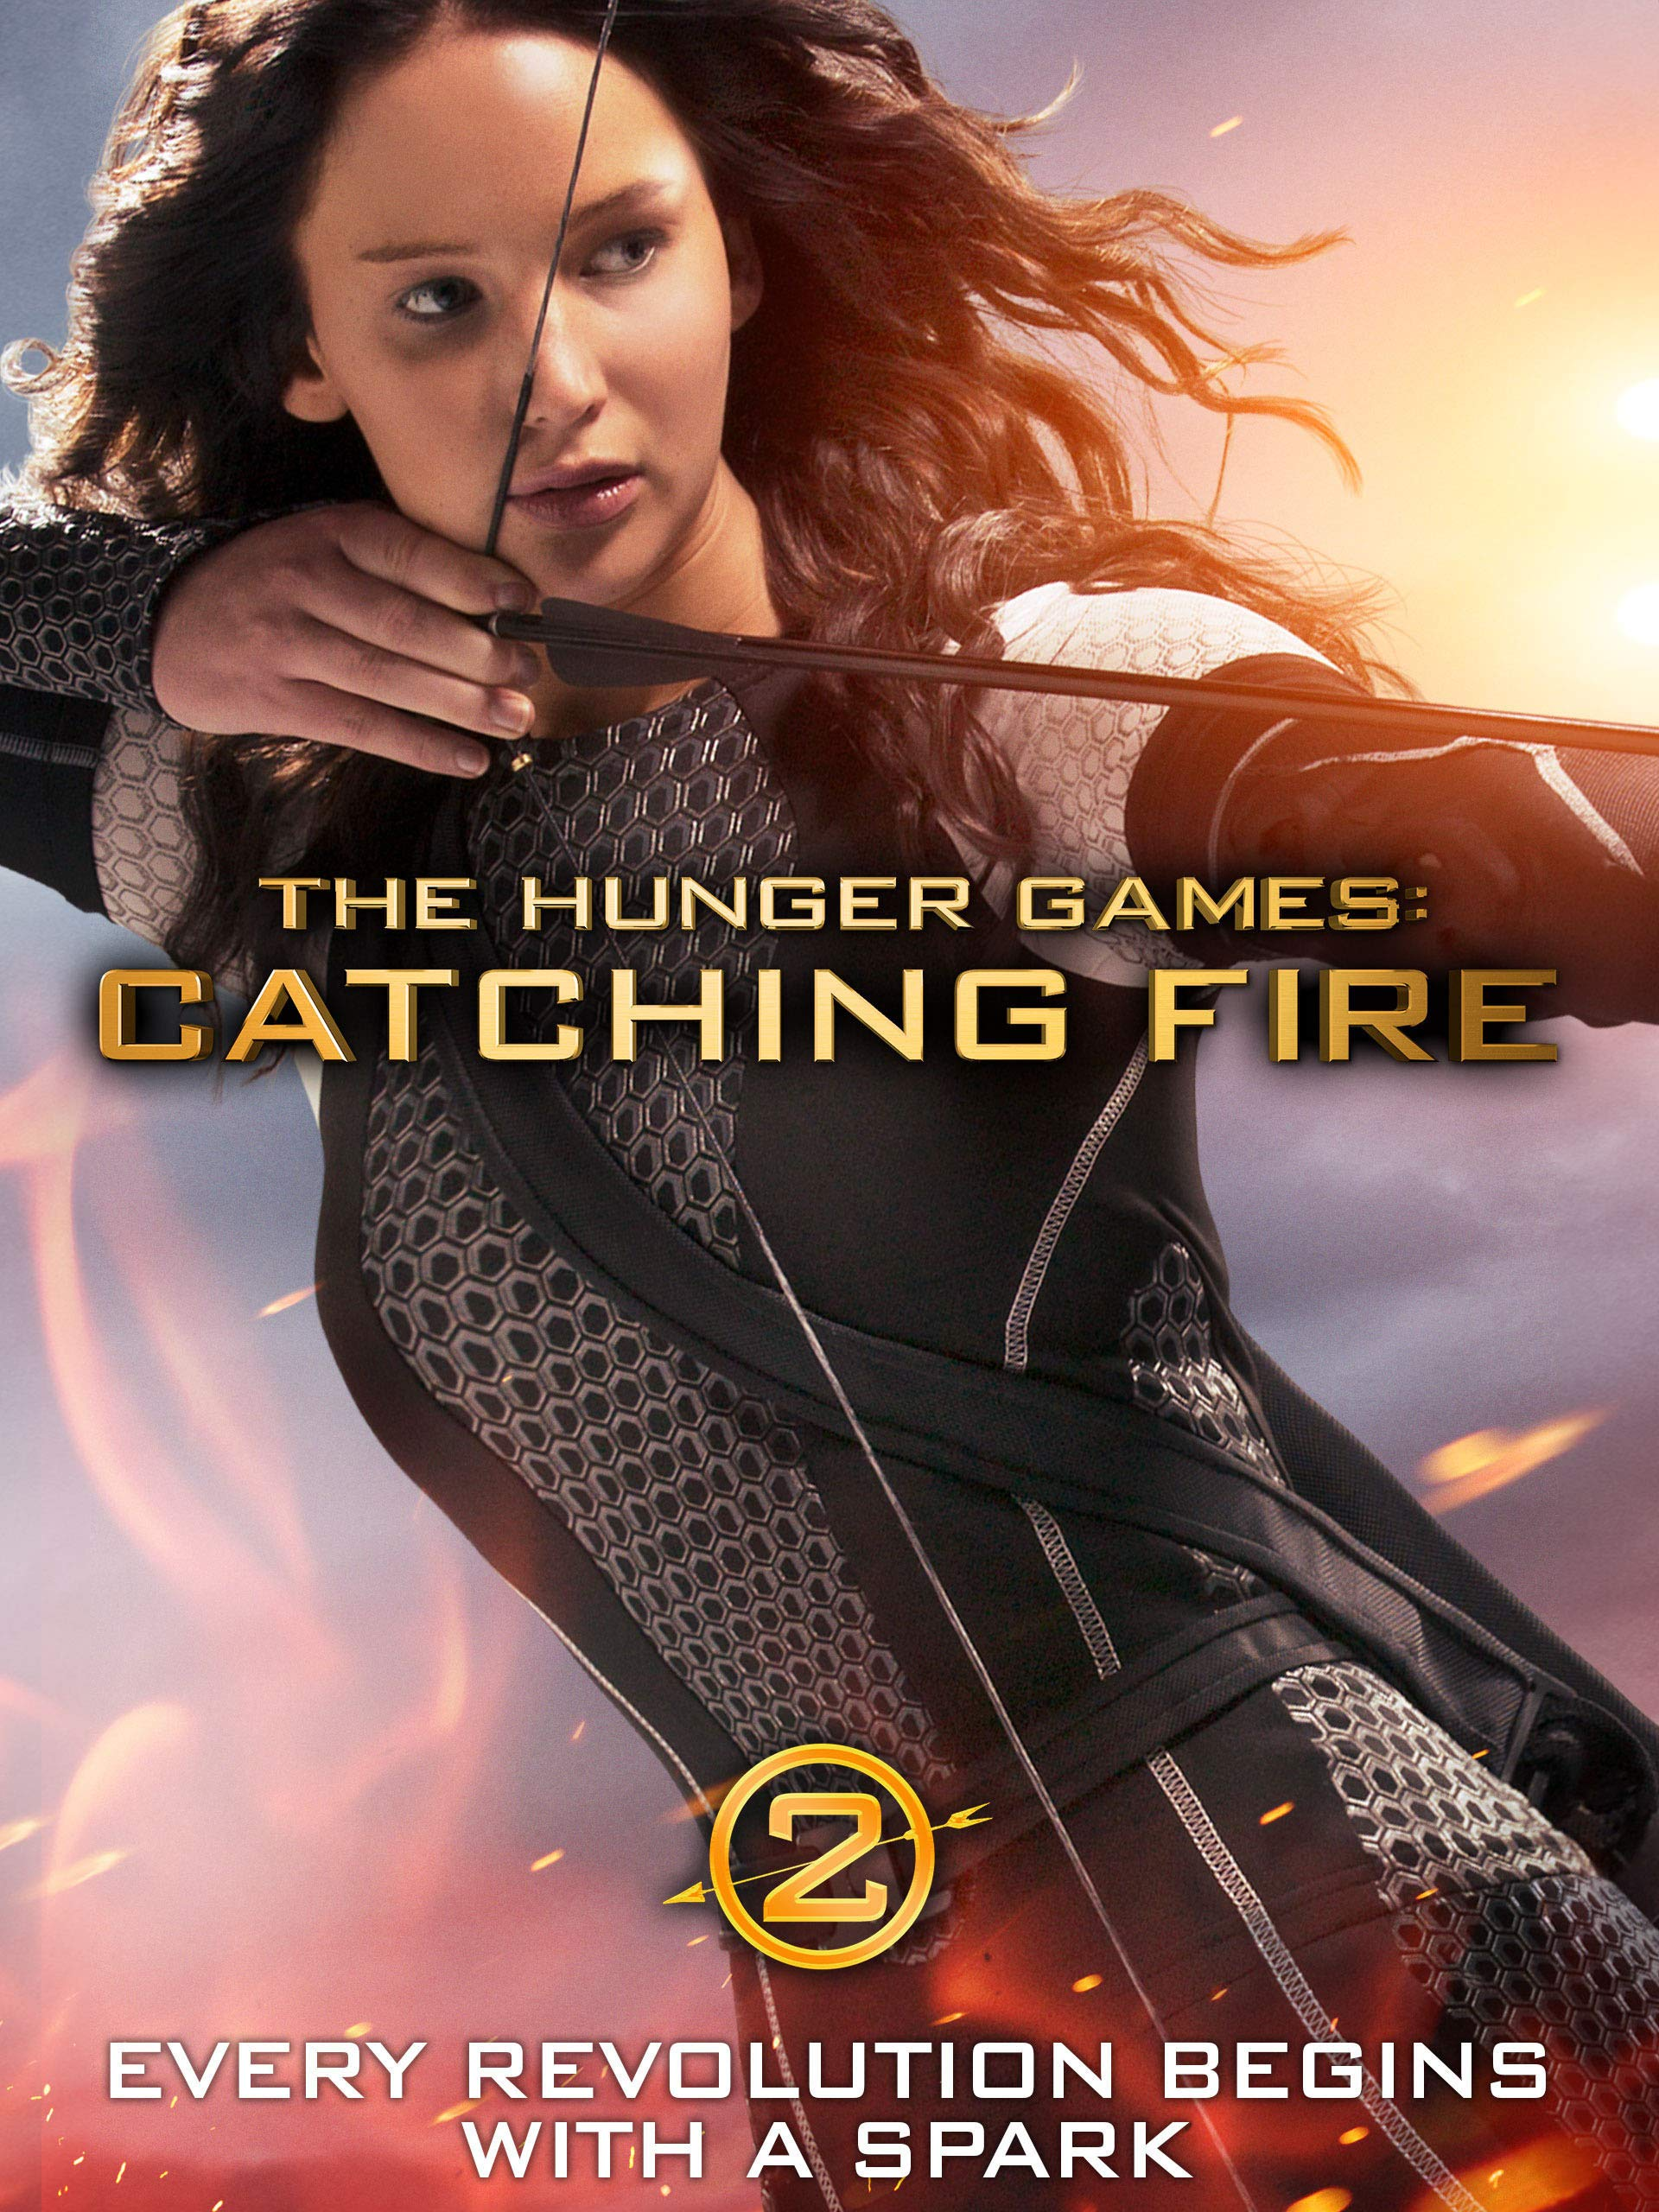 The Hunger Games: Catching Fire (4K UHD) on Amazon Prime Video UK